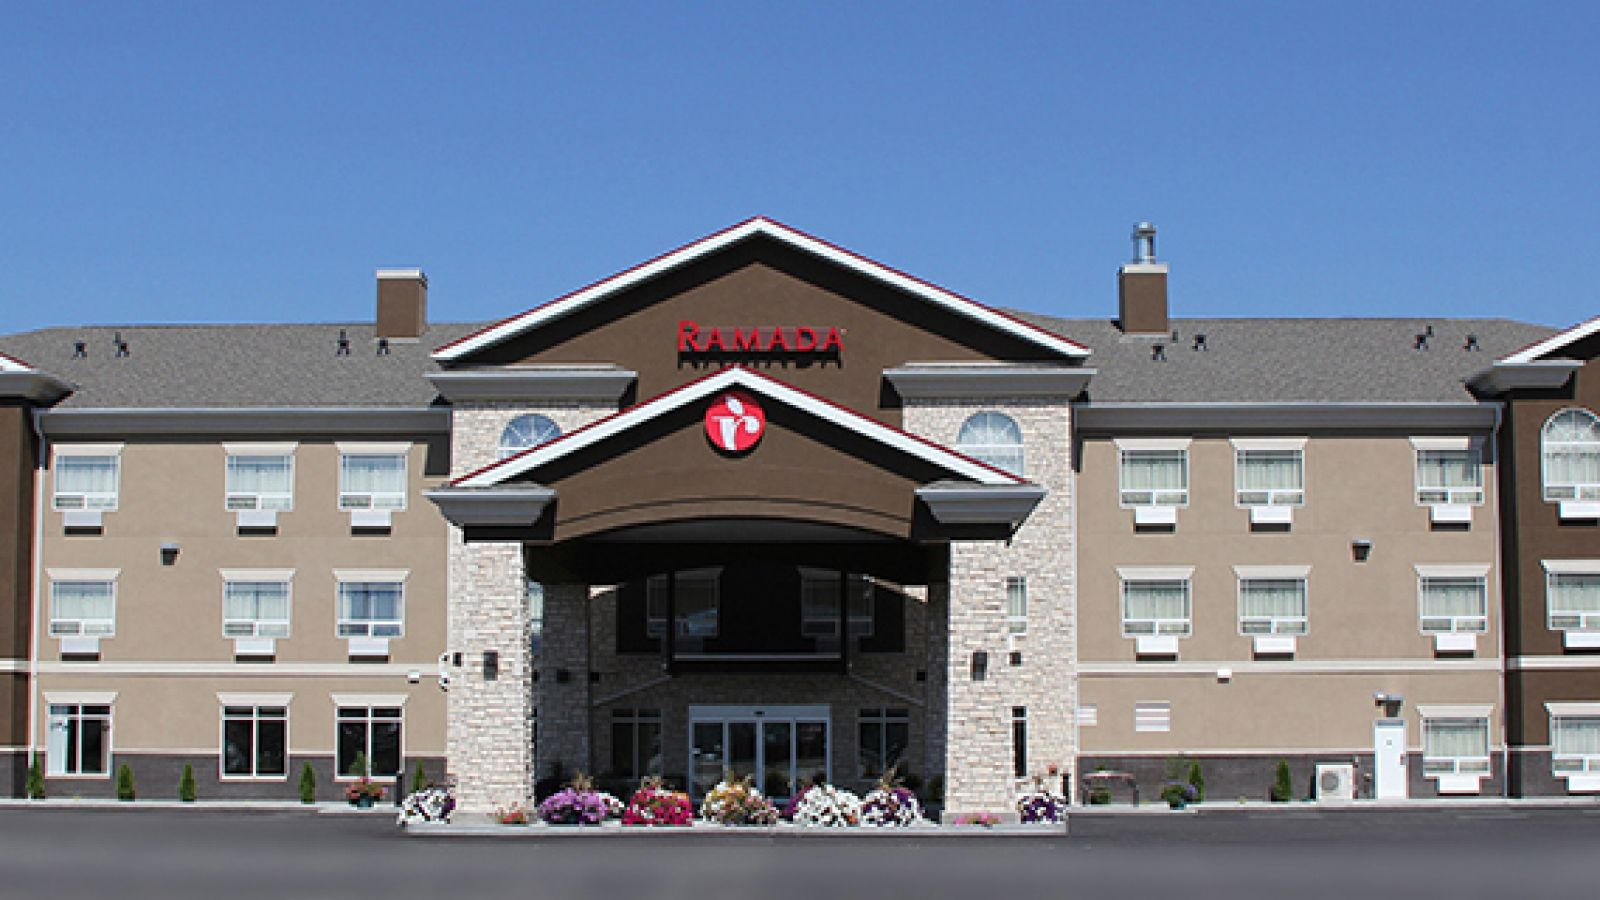 The Ramada Creston welcomes you.